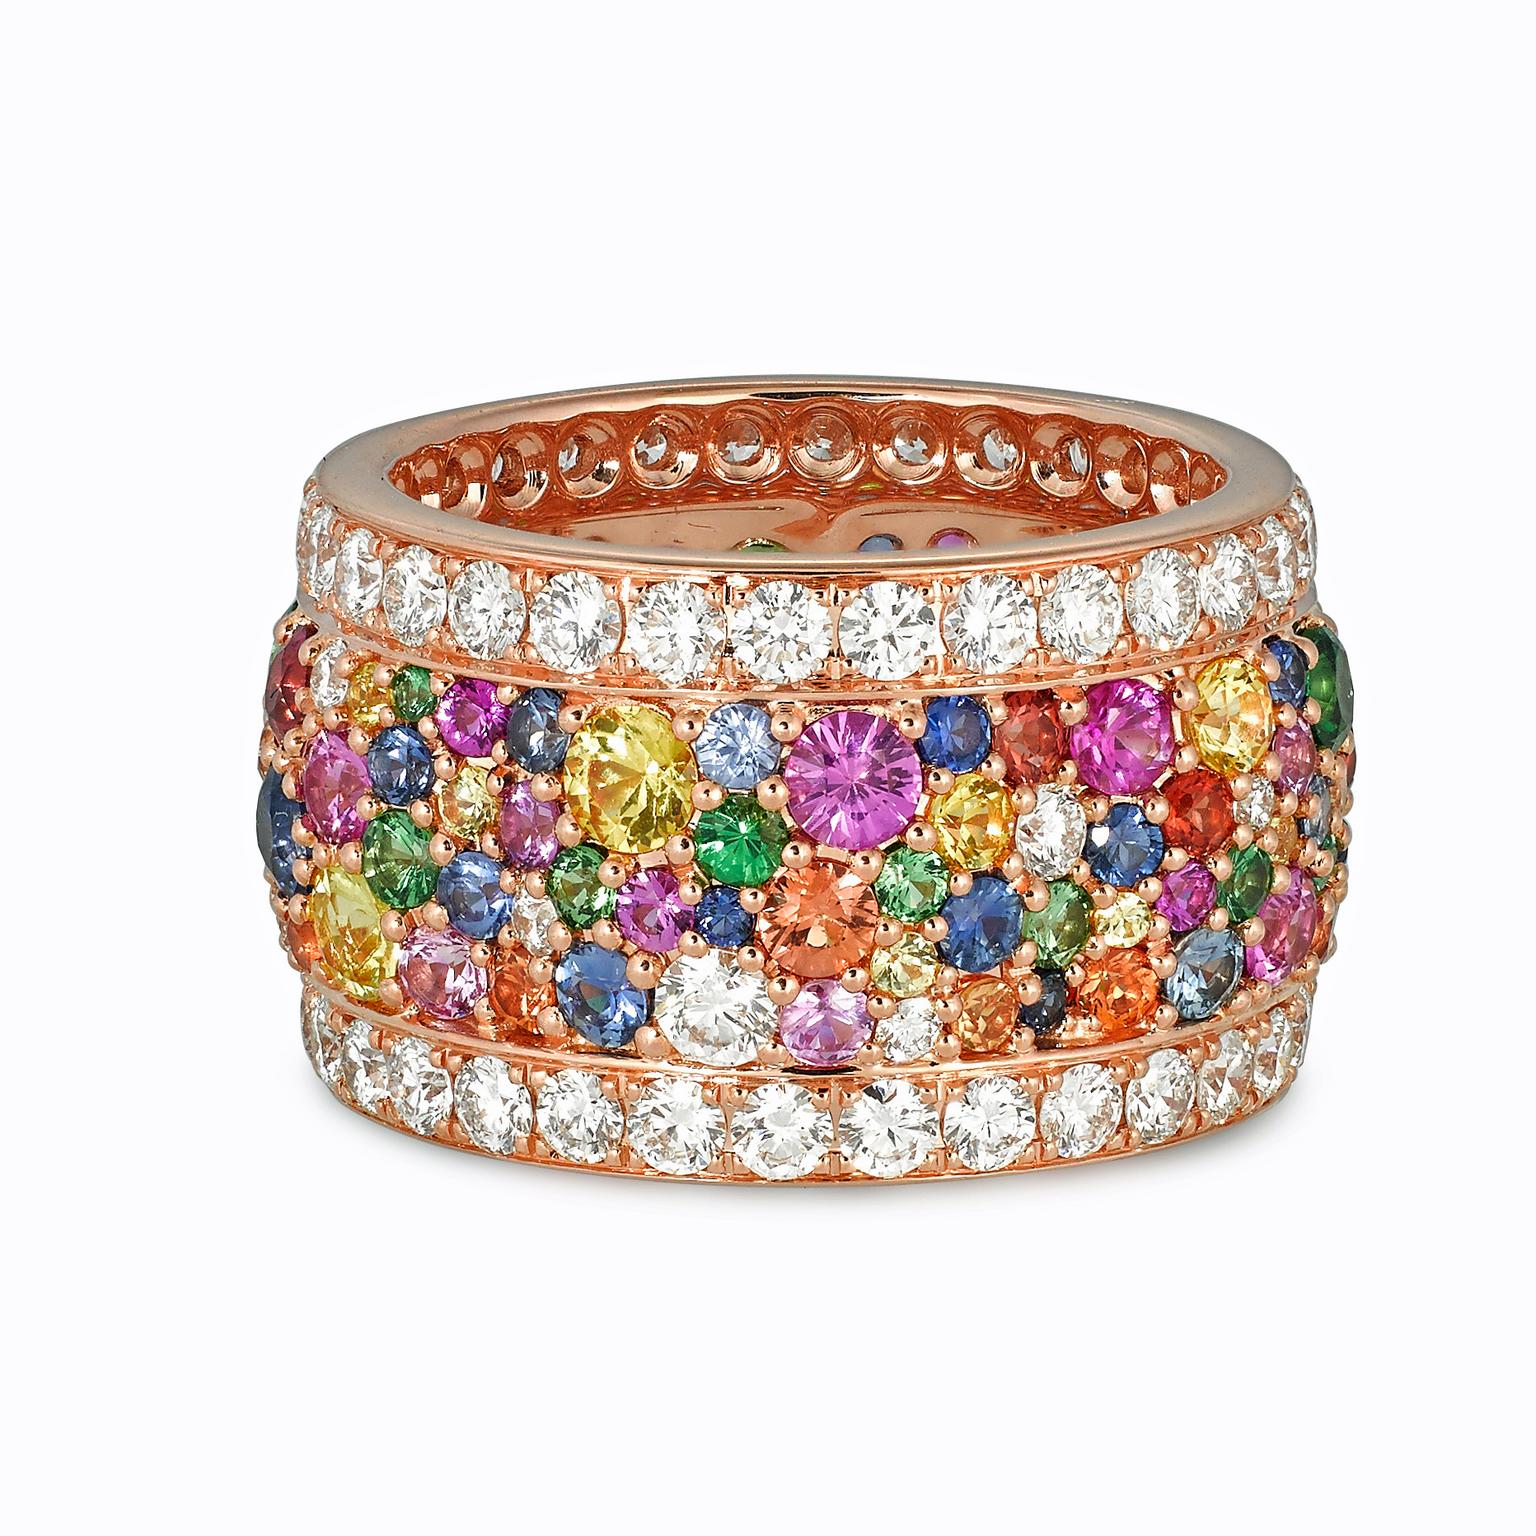 VANLELES Legends of Life multicolour gemstone ring